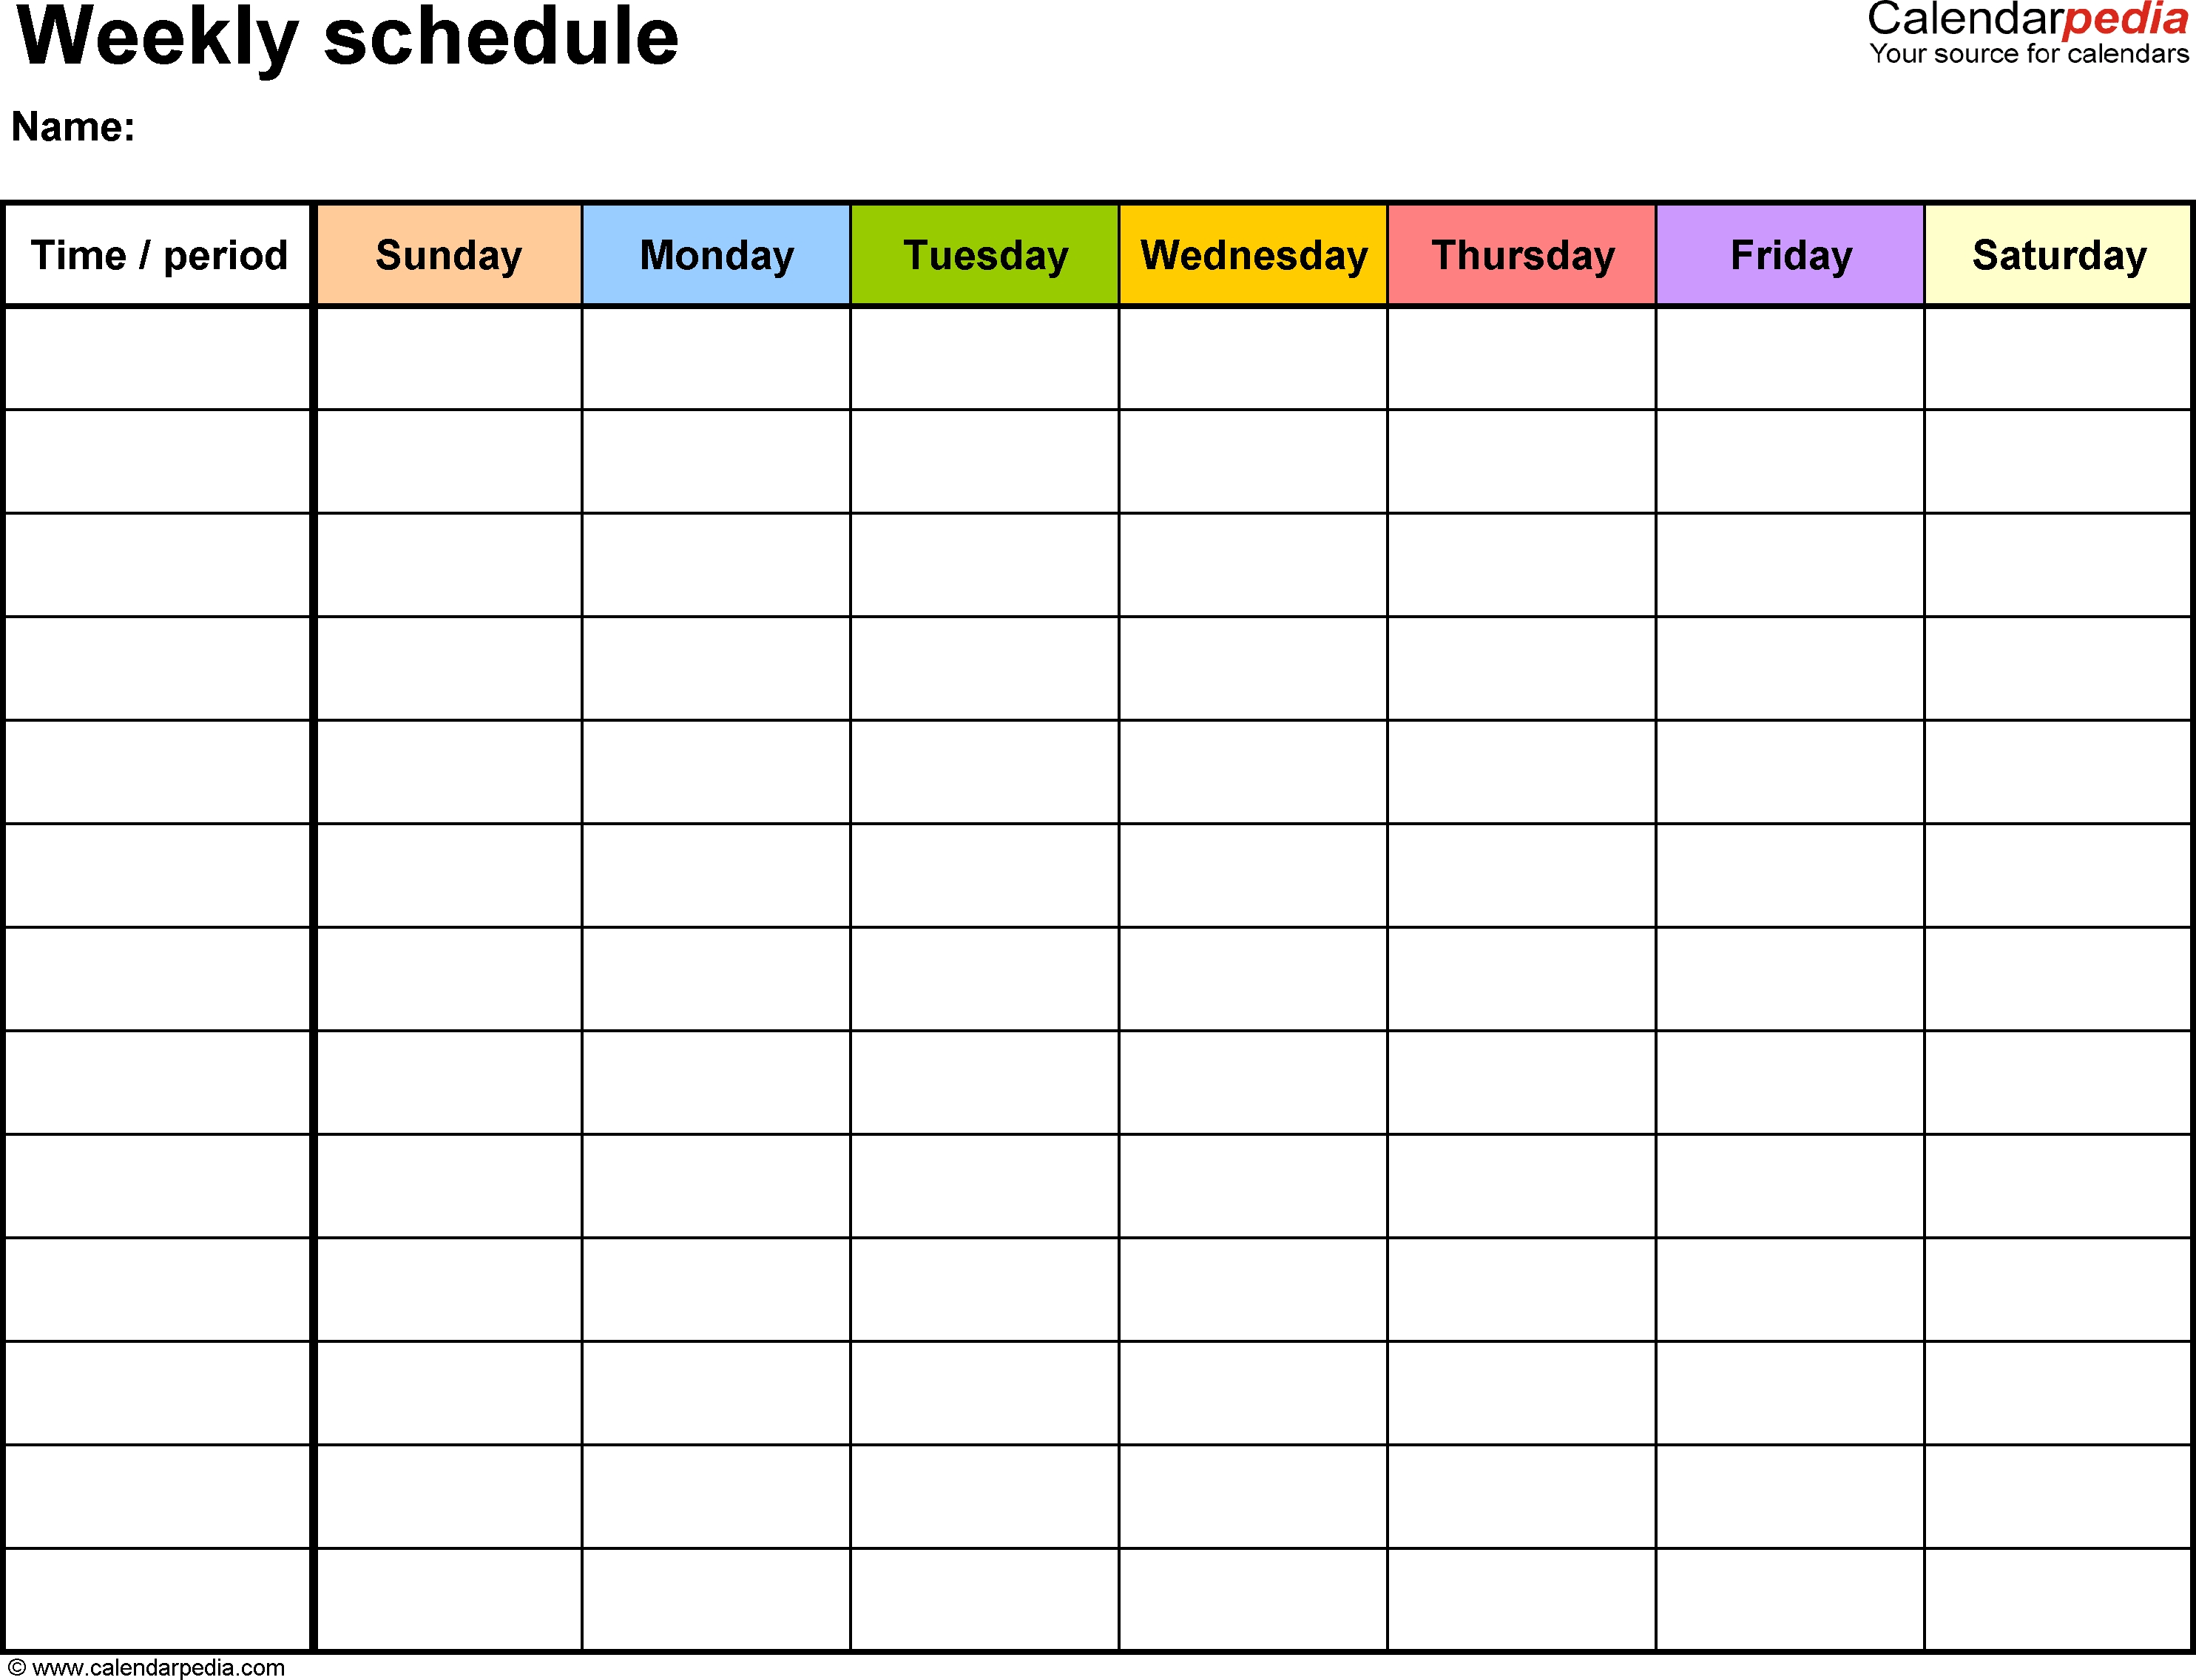 Free Weekly Schedule Templates For Excel - 18 Templates